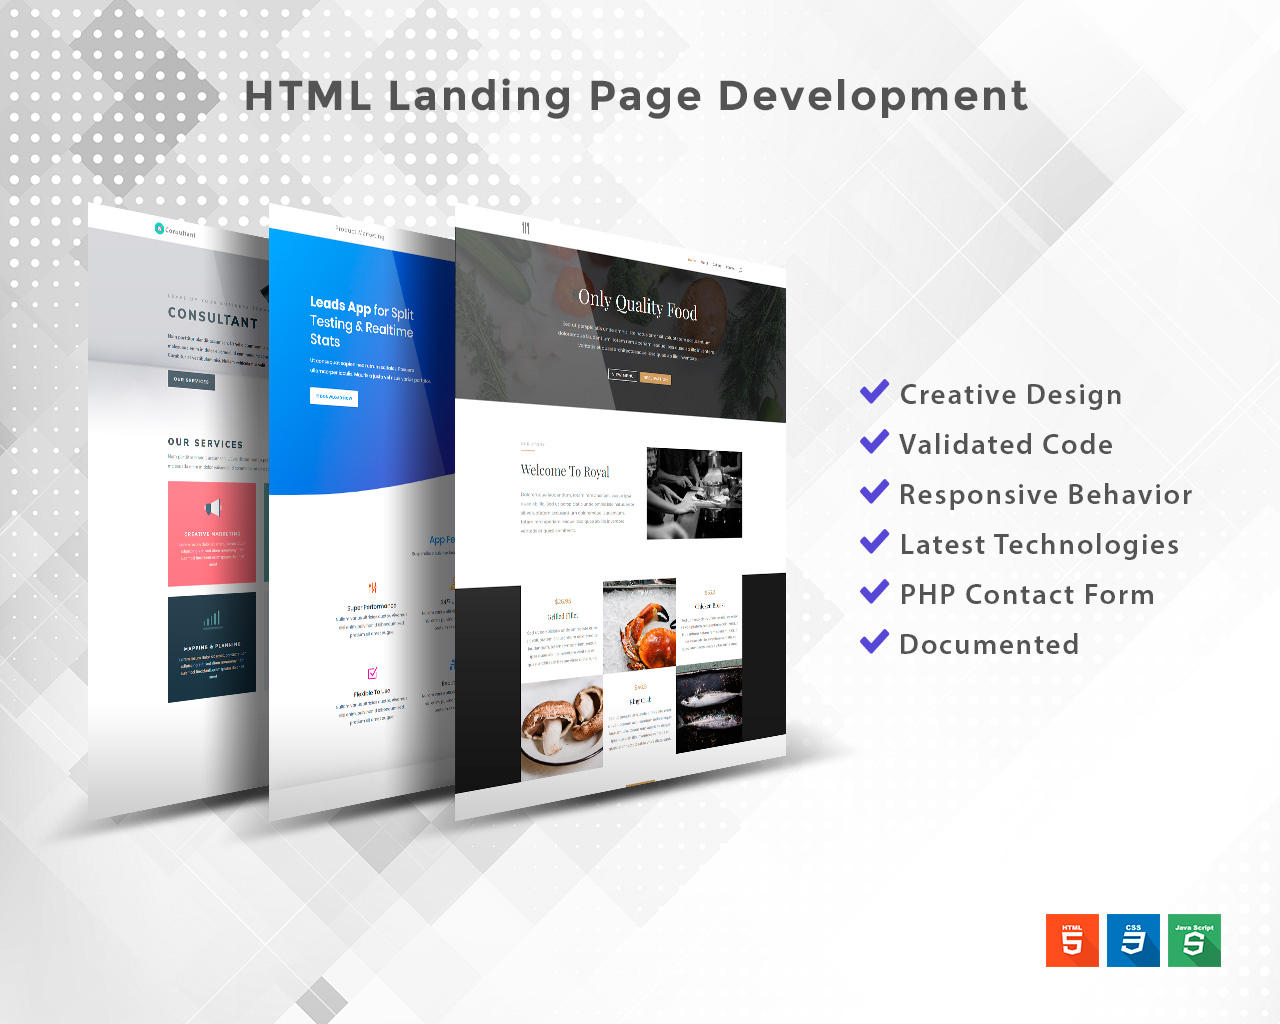 HTML Landing Page Development by marcoarib - 110771